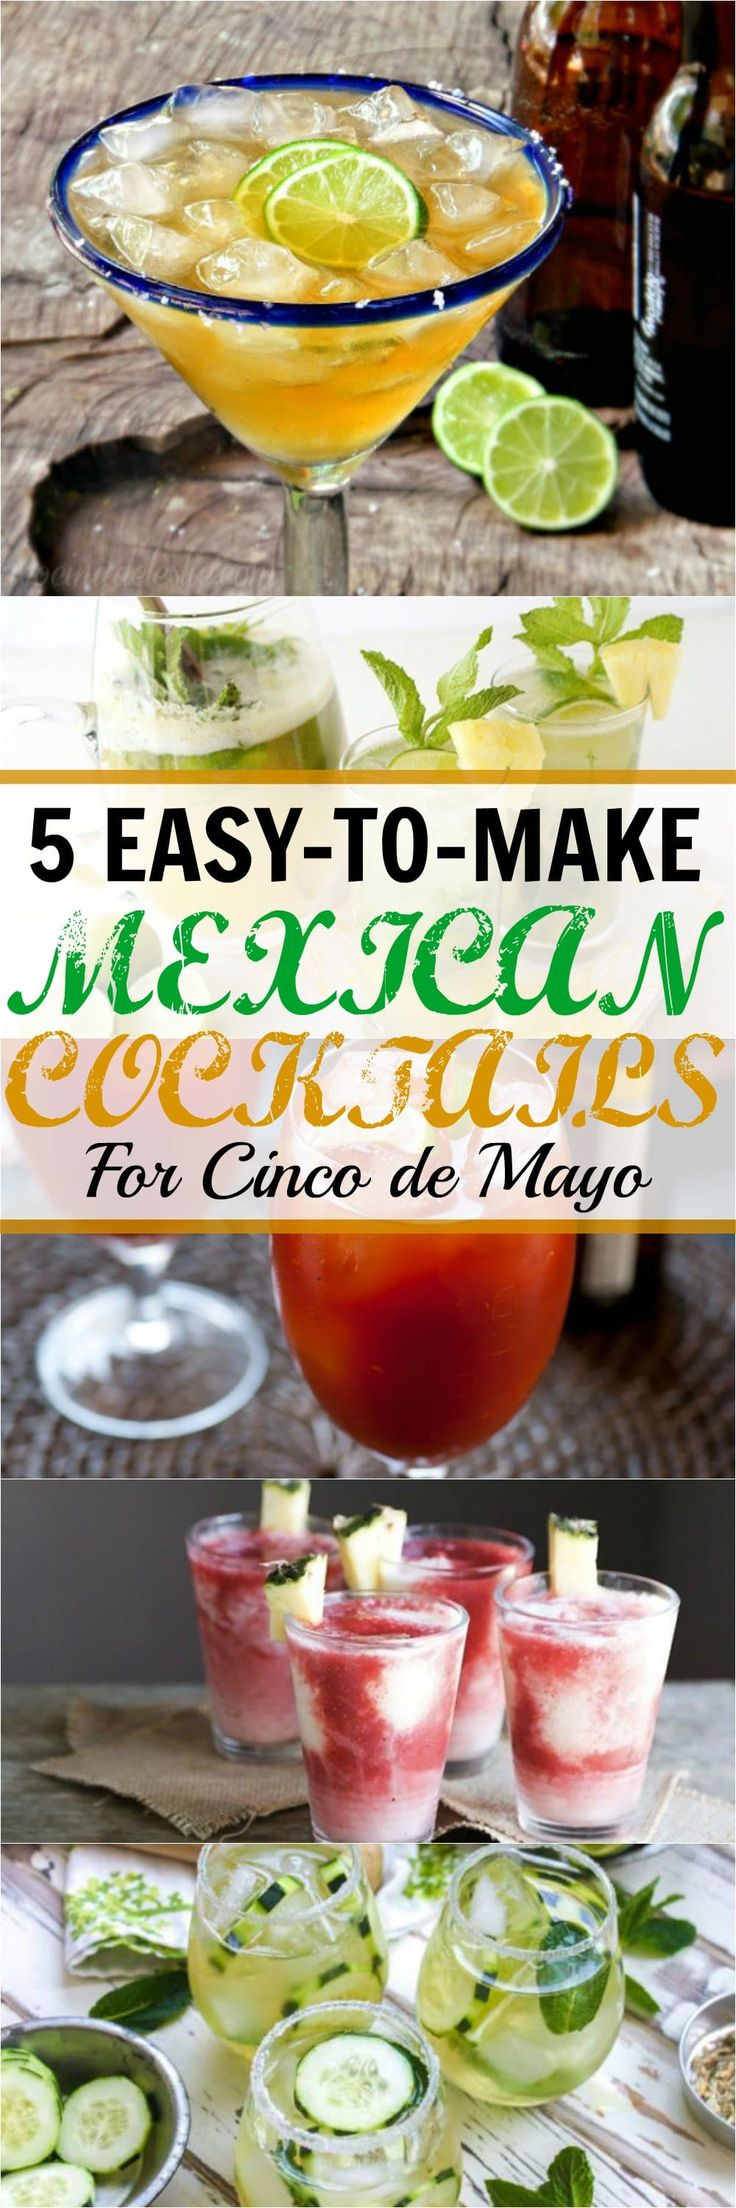 These Mexican cocktails are perfect for your Cinco de Mayo party! Micheladas are one of my favorite drinks - although I prefer them with lime and salt only.